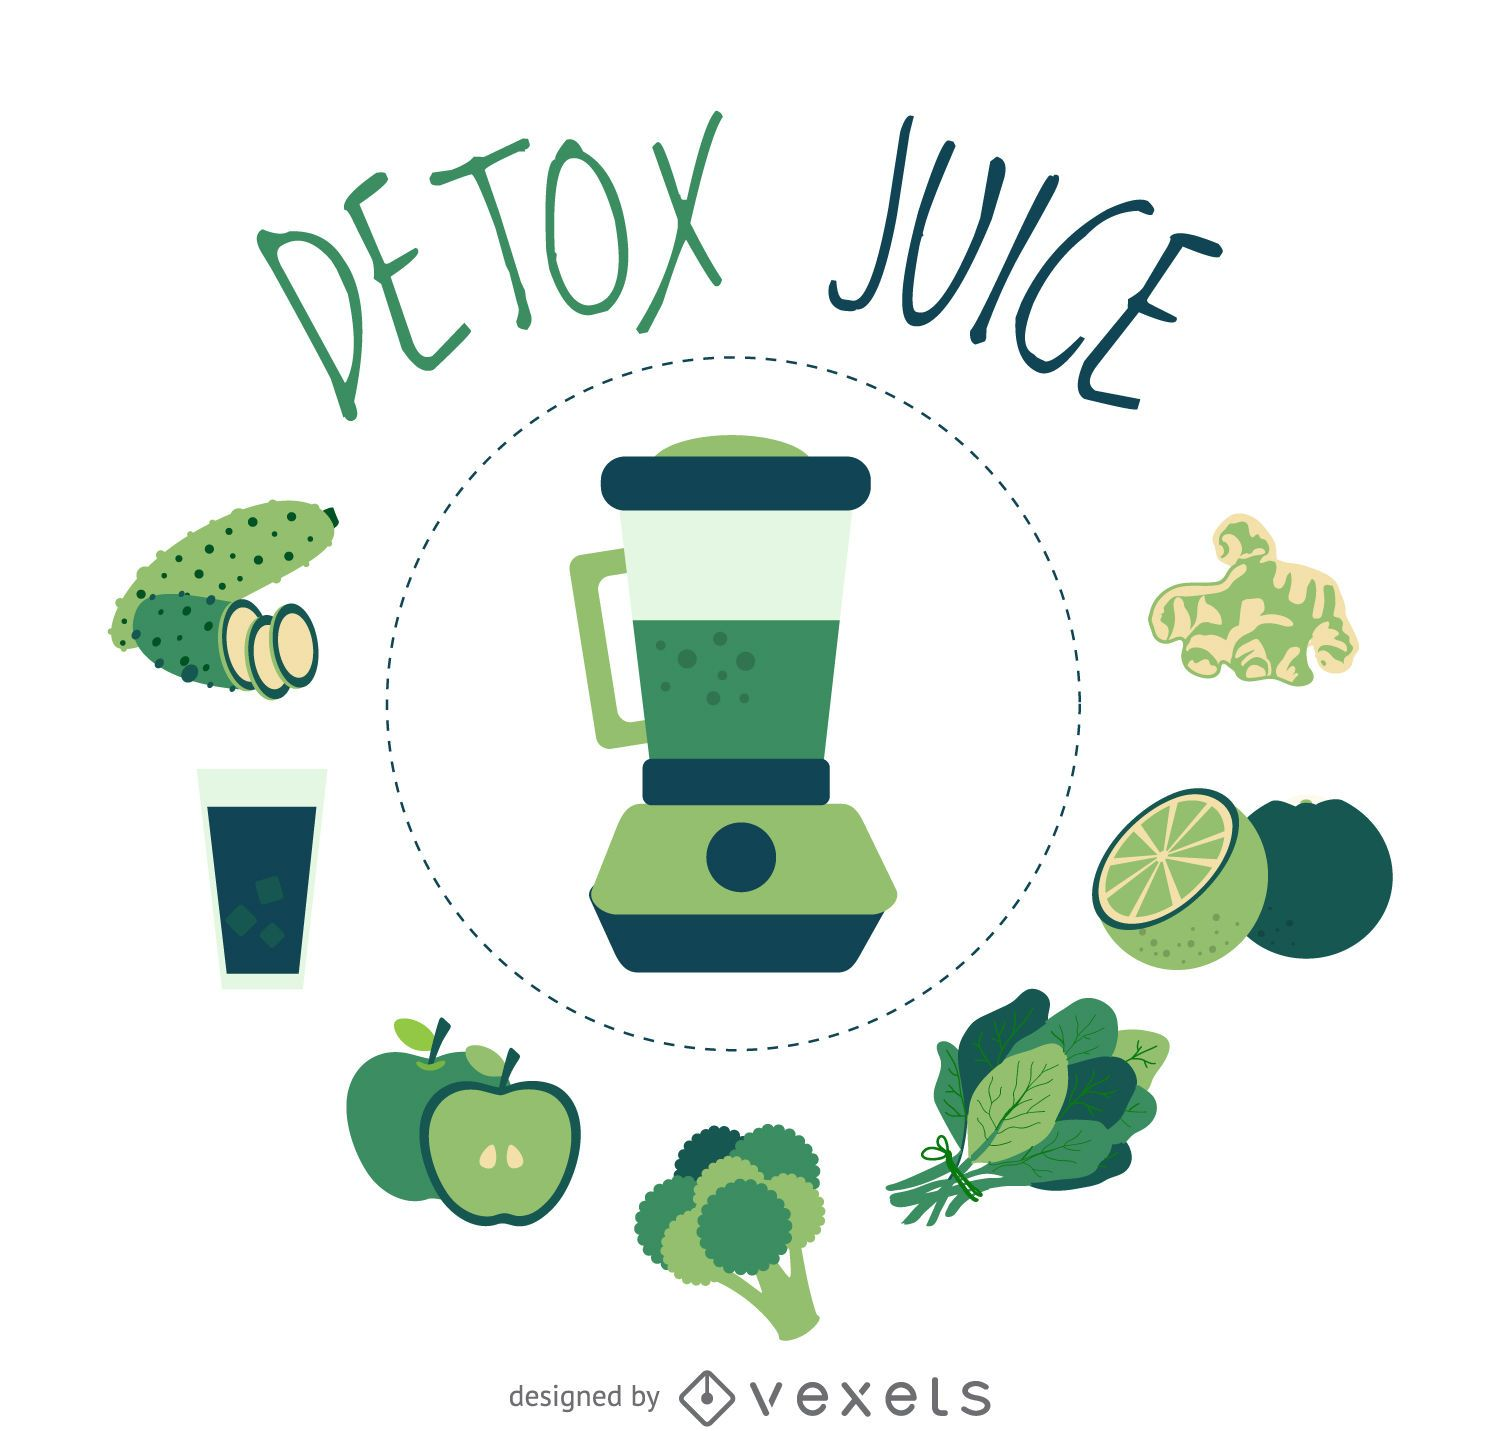 clean detox juice element poster vector download. Black Bedroom Furniture Sets. Home Design Ideas